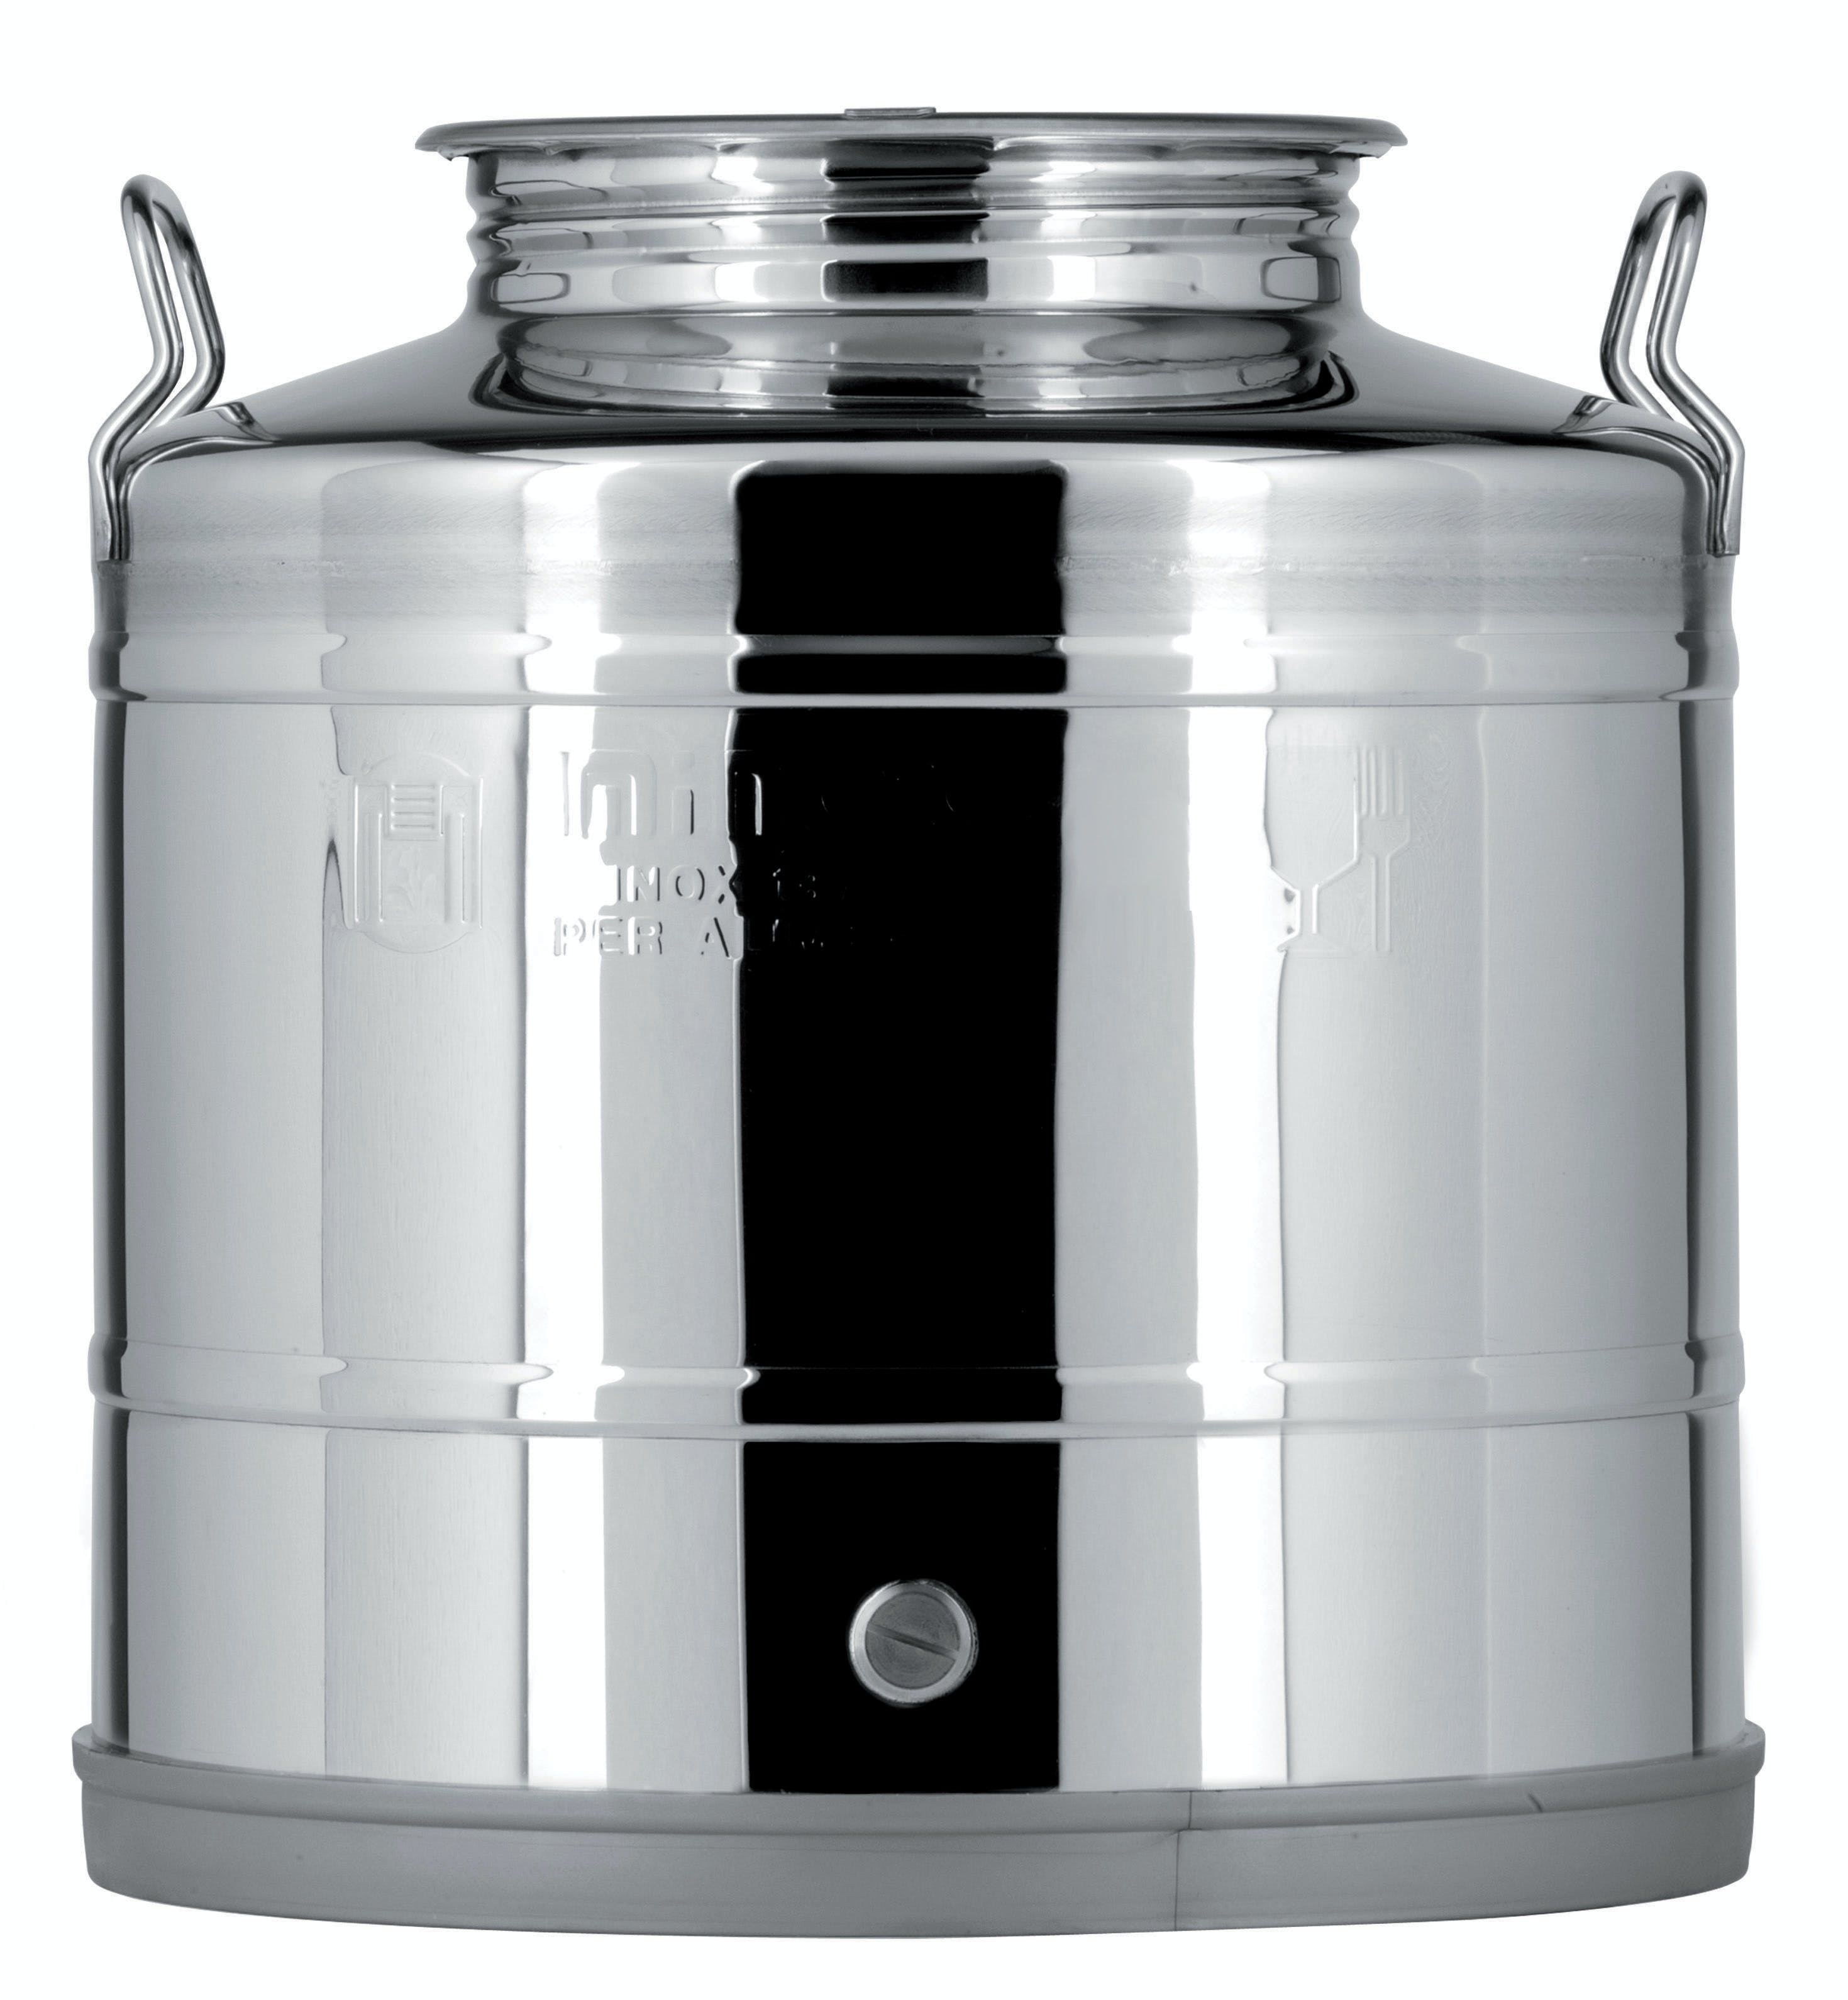 Italian Made Stainless Steel National Sanitary Foundation (NSF) Certified Fusti-25 Liters Steel fusto sold by M5 Corporation